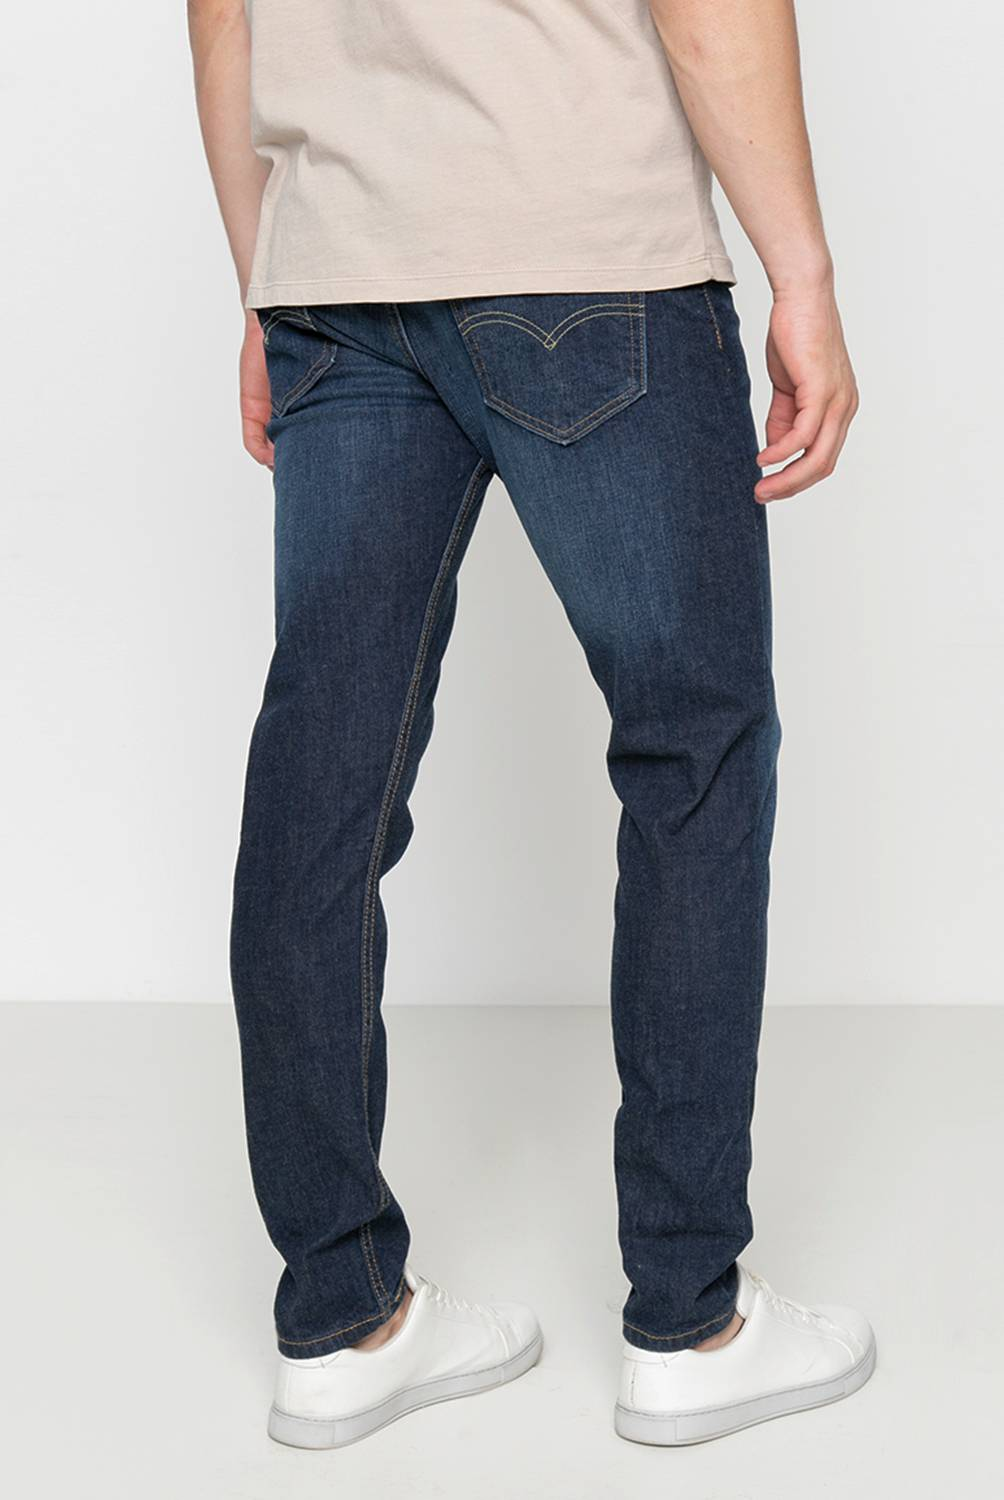 Levis - Jeans Casual Regular Fit